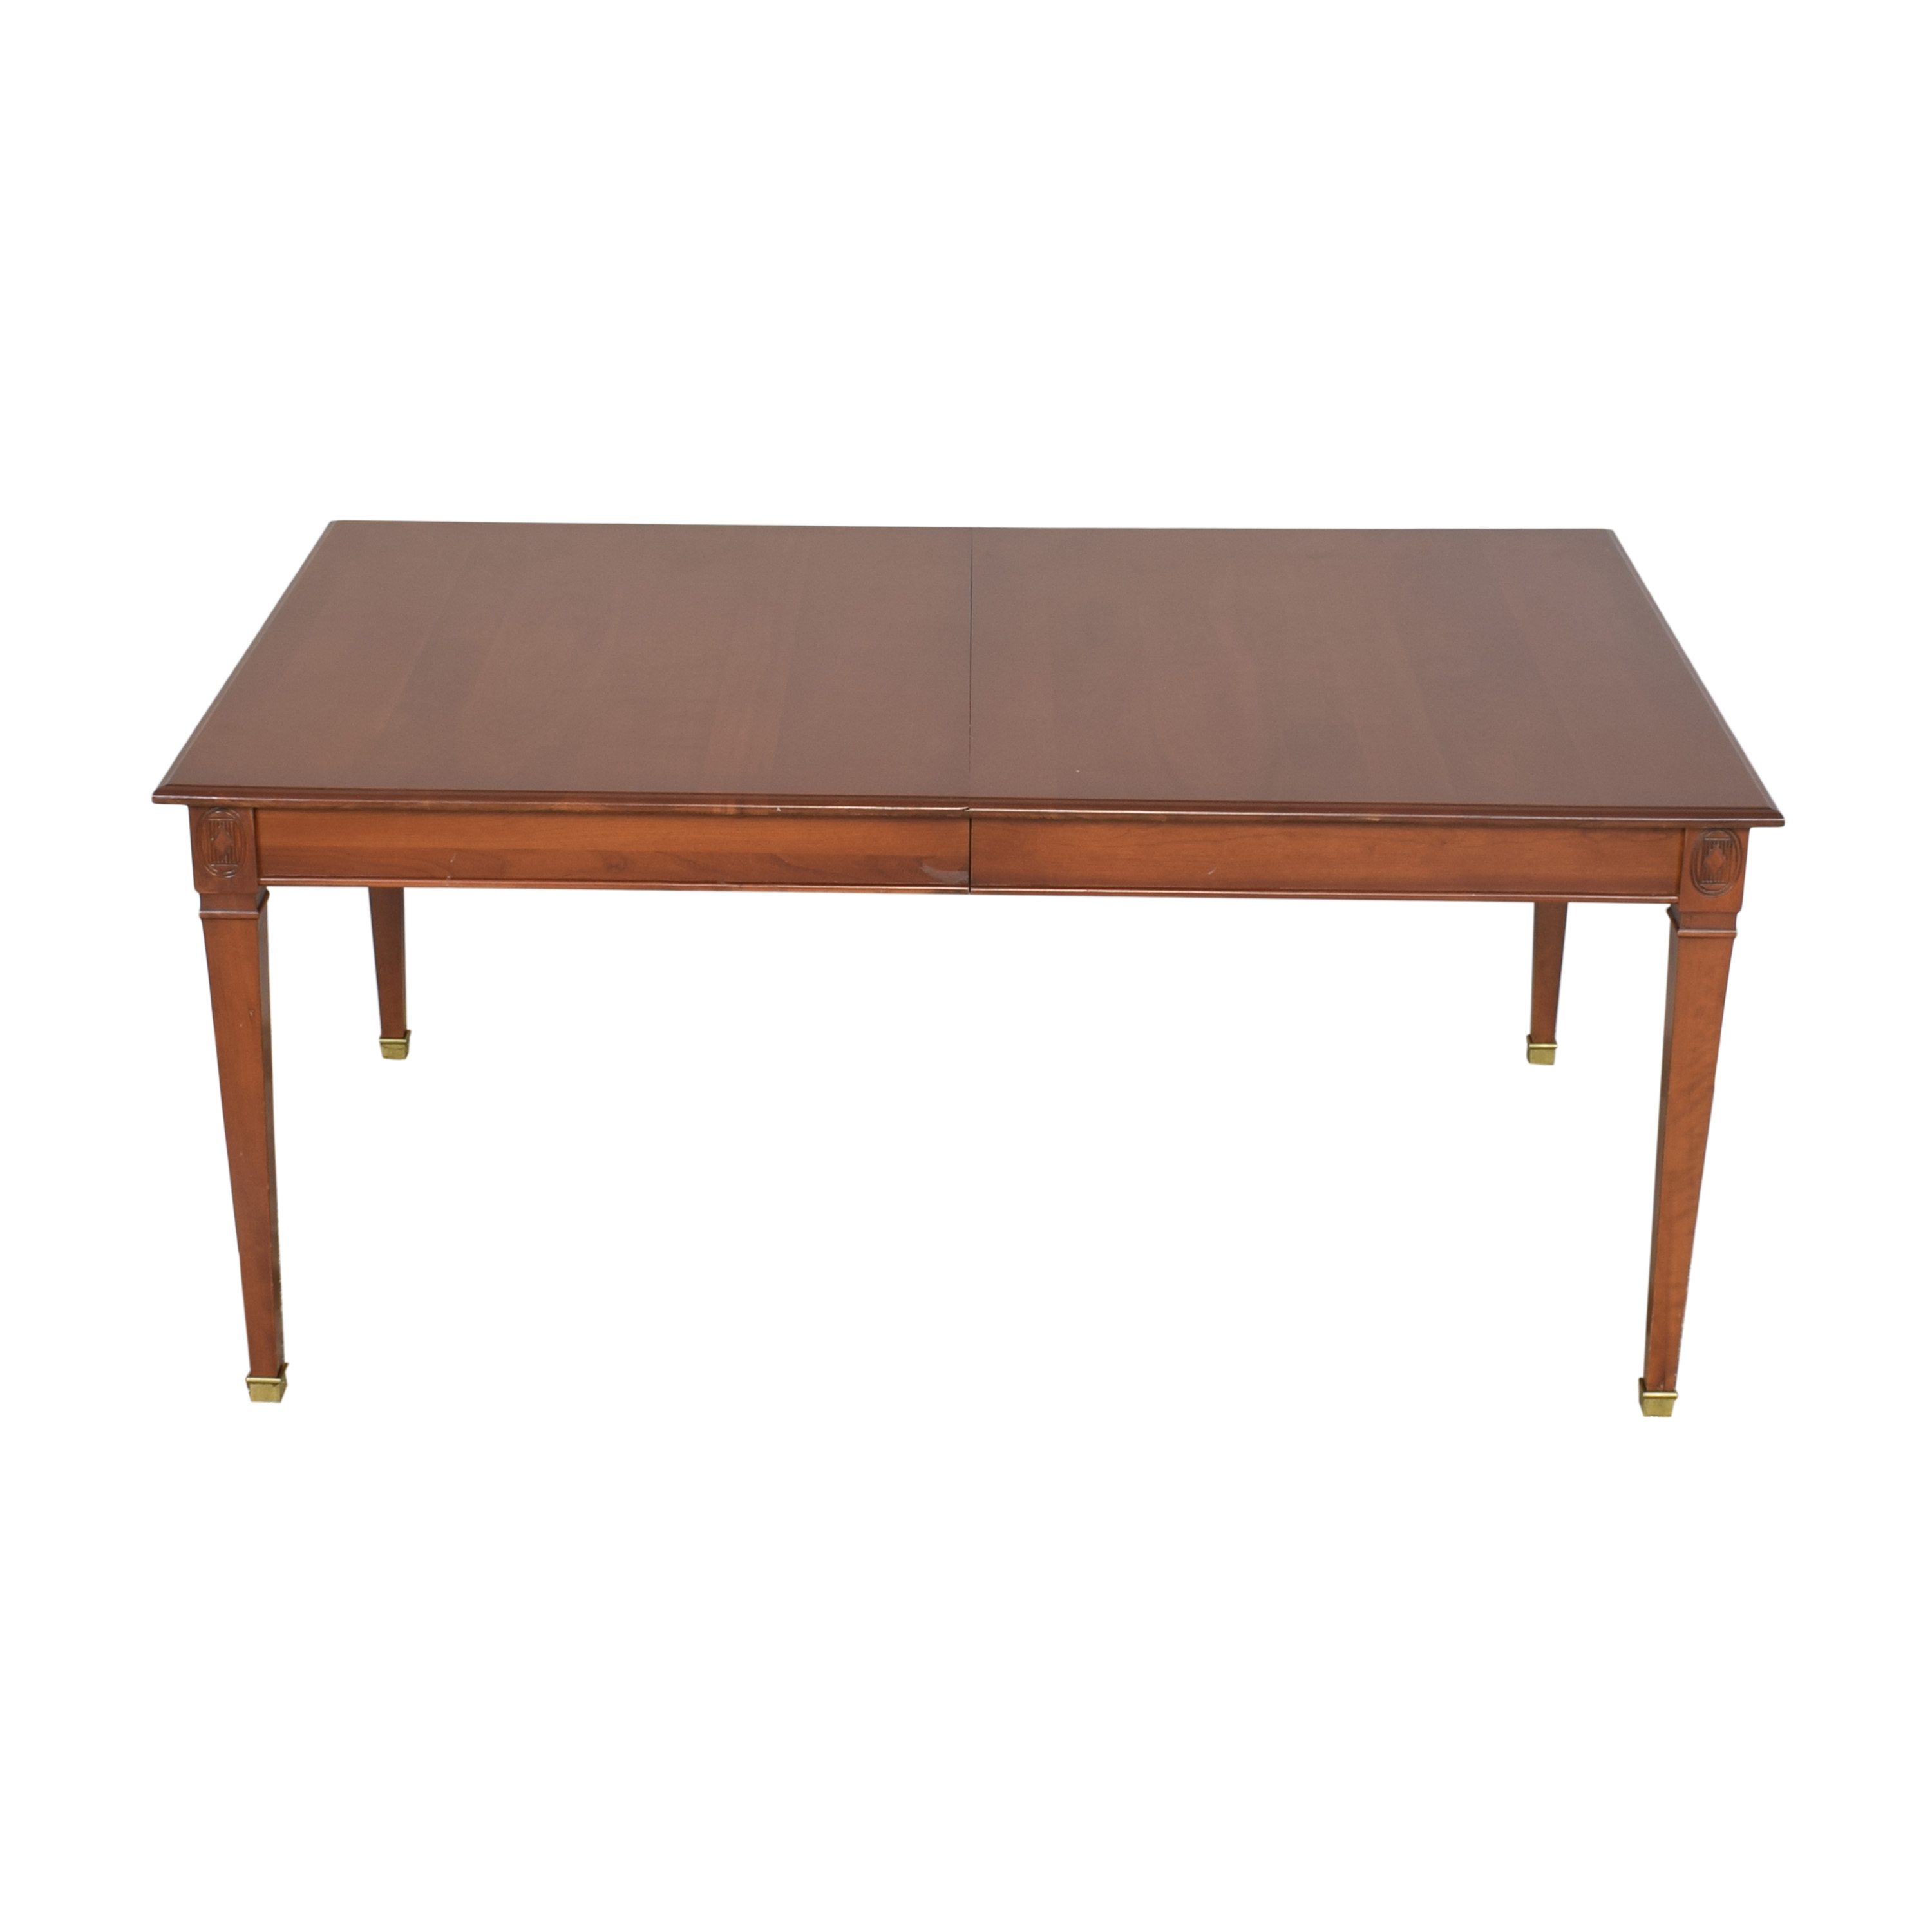 Harden Harden Extension Dining Table dimensions